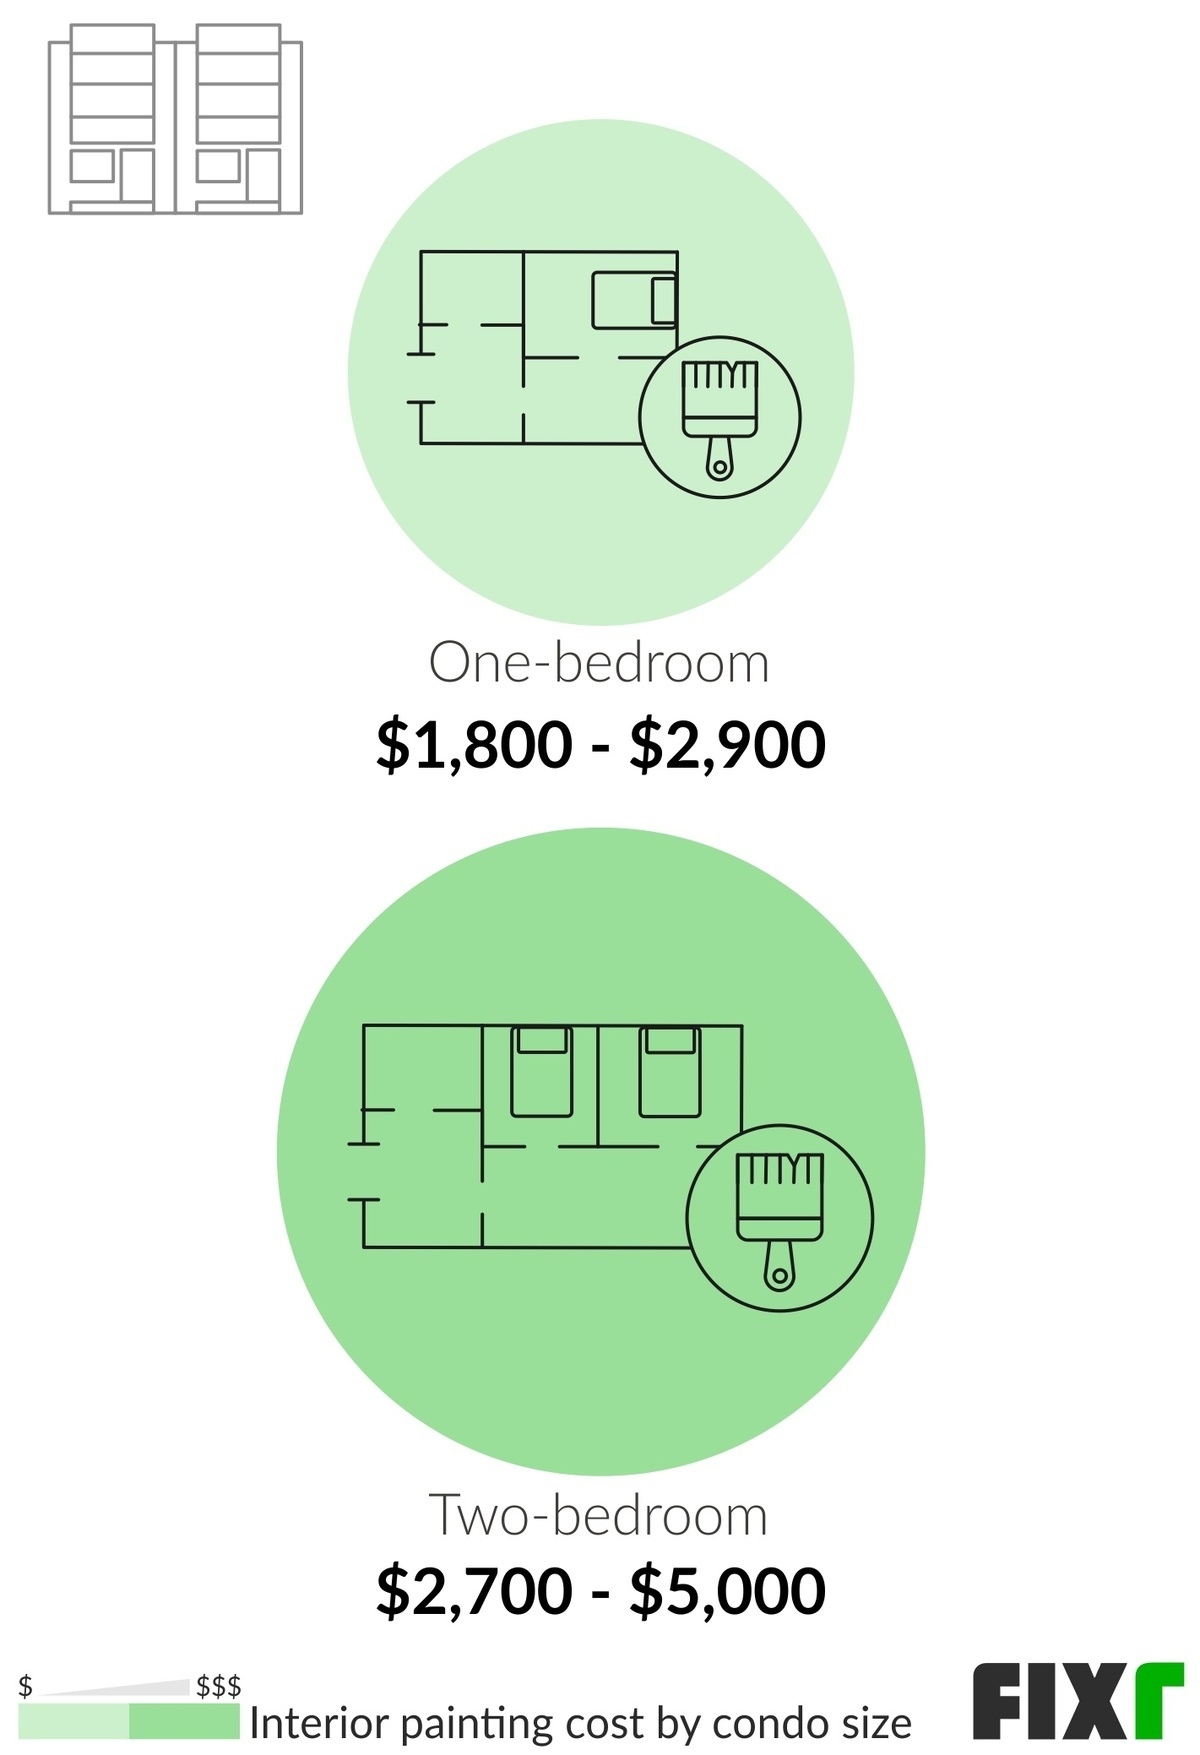 Cost to Paint a One-Bedroom and a Two-Bedroom Condo